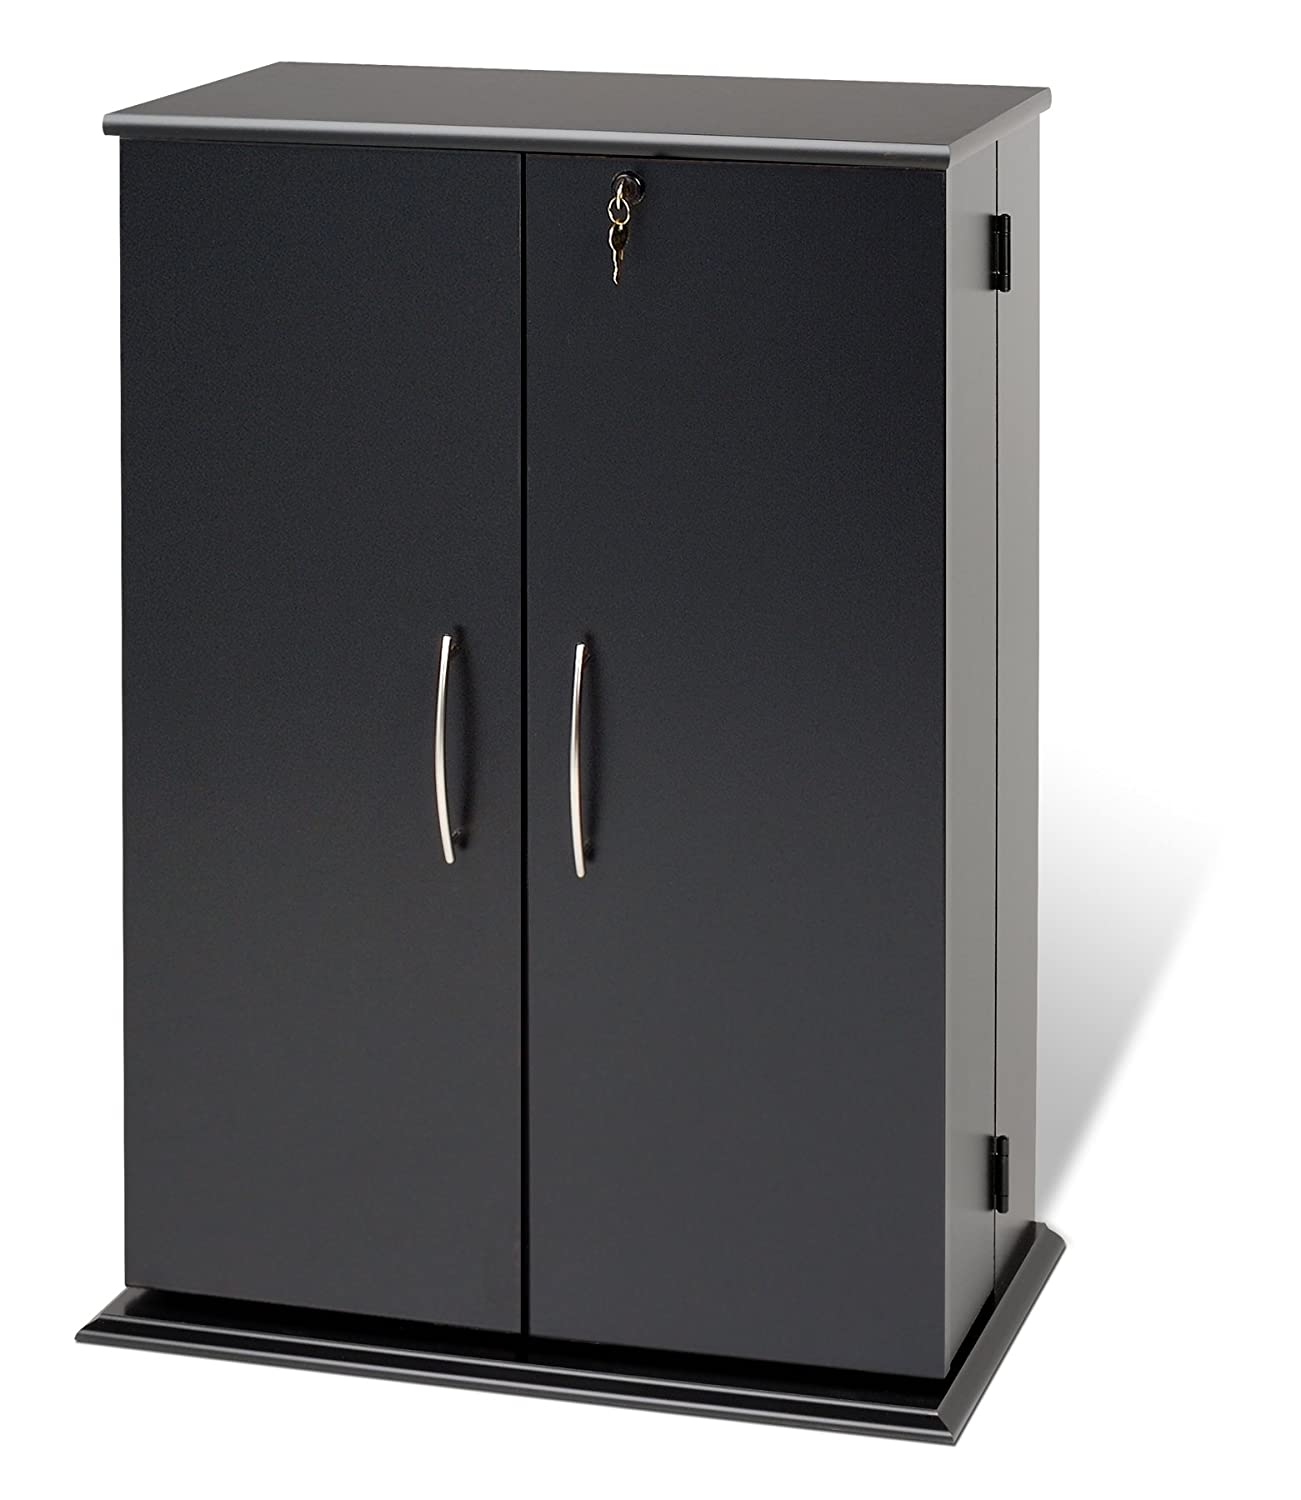 Lockable Dvd Storage Cabinet Amazoncom Cherry Black Locking Media Storage Cabinet Kitchen